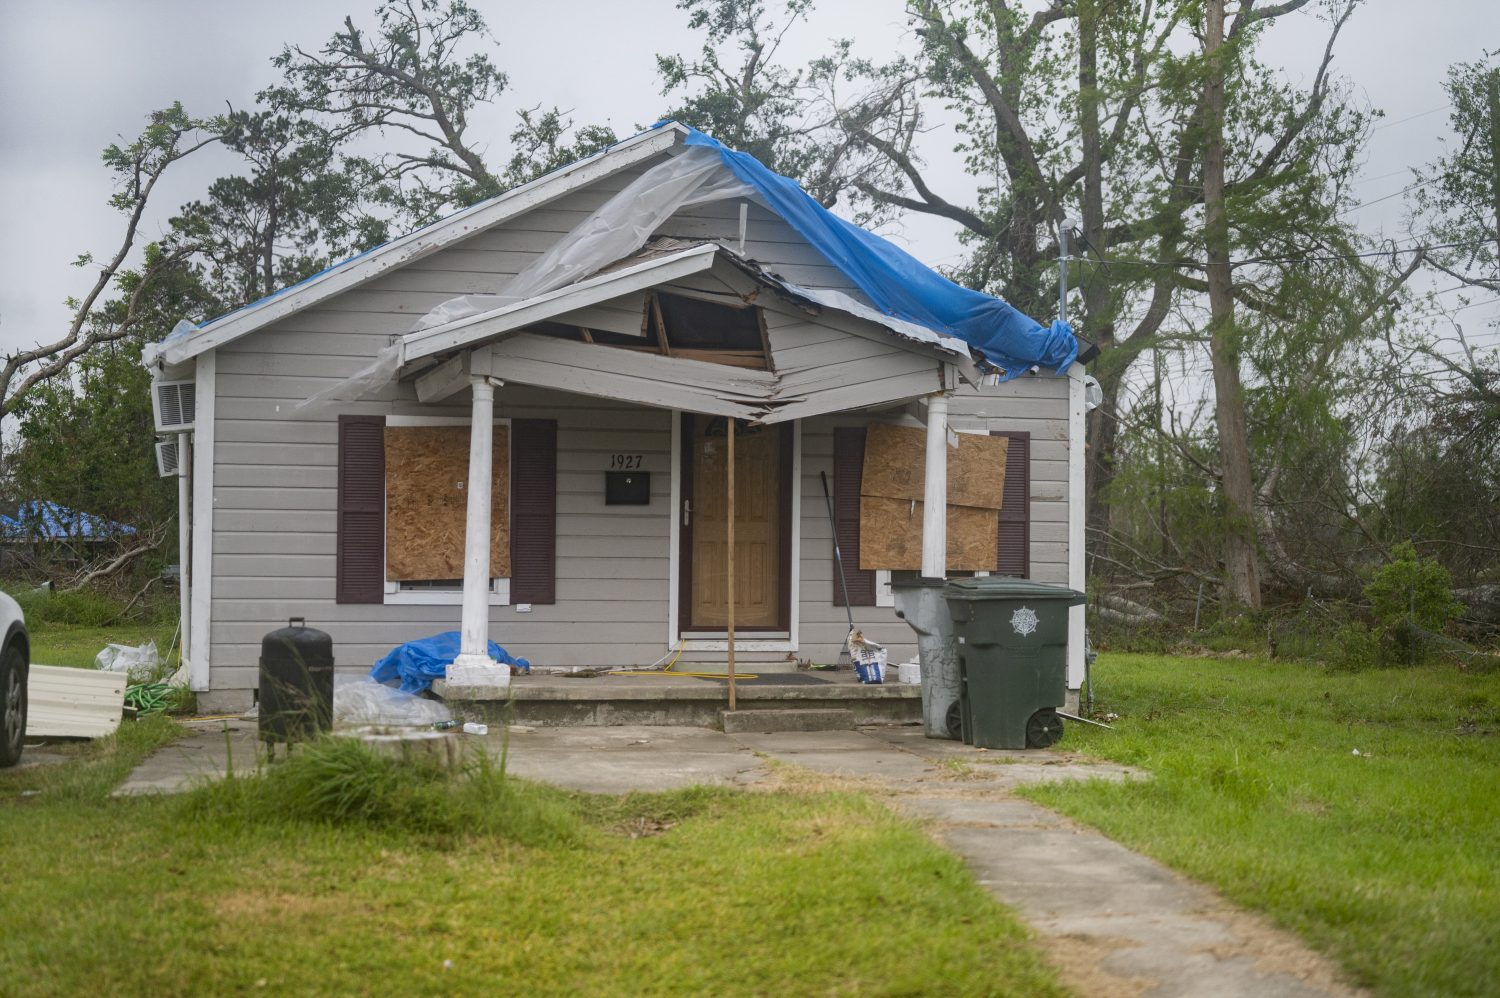 How southwest Louisiana mobilized to shelter unhoused people during the winter storm